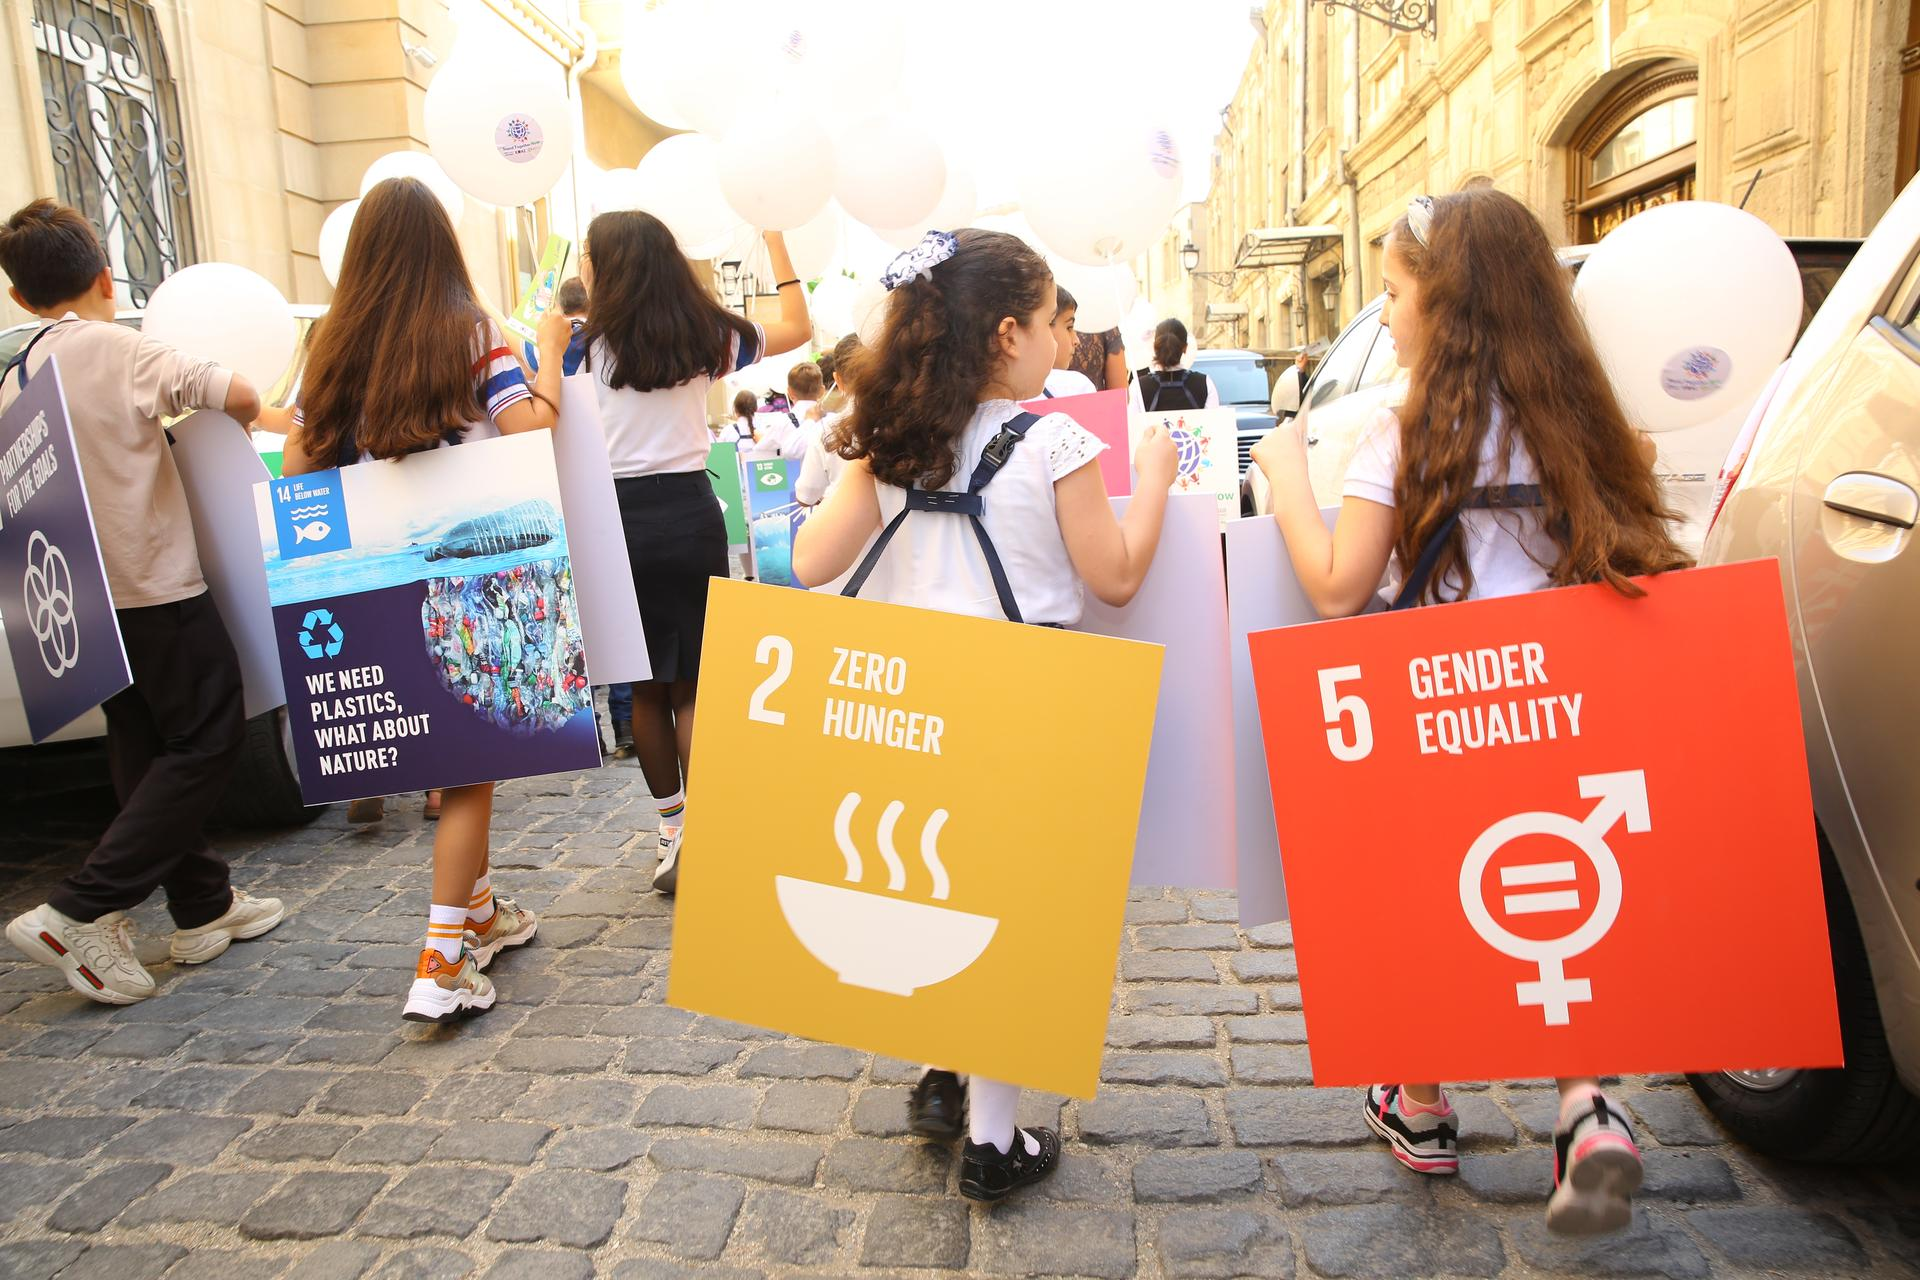 Global Week on the Global Climate Strike and International Climate Action Summit, 26 septembrie 2019, Baku, Azerbaijan